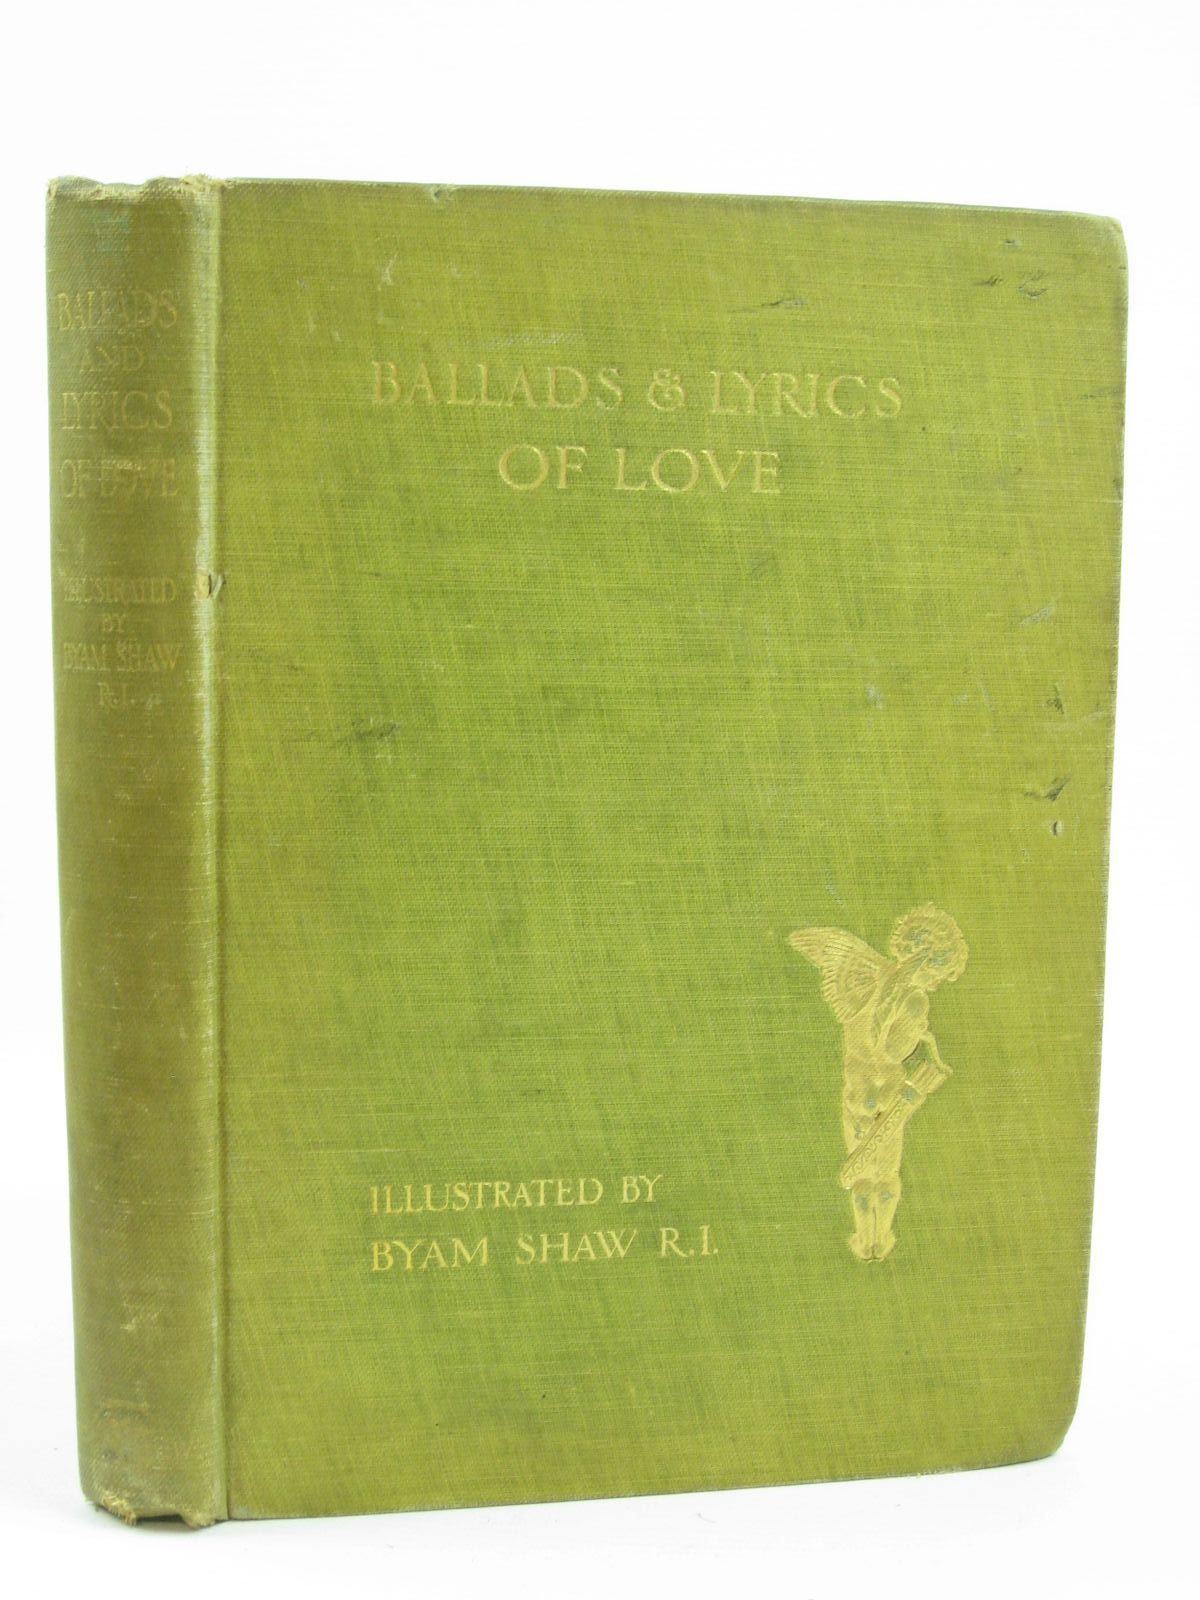 Photo of BALLADS AND LYRICS OF LOVE written by Sidgwick, Frank illustrated by Shaw, Byam published by Chatto & Windus (STOCK CODE: 1406389)  for sale by Stella & Rose's Books